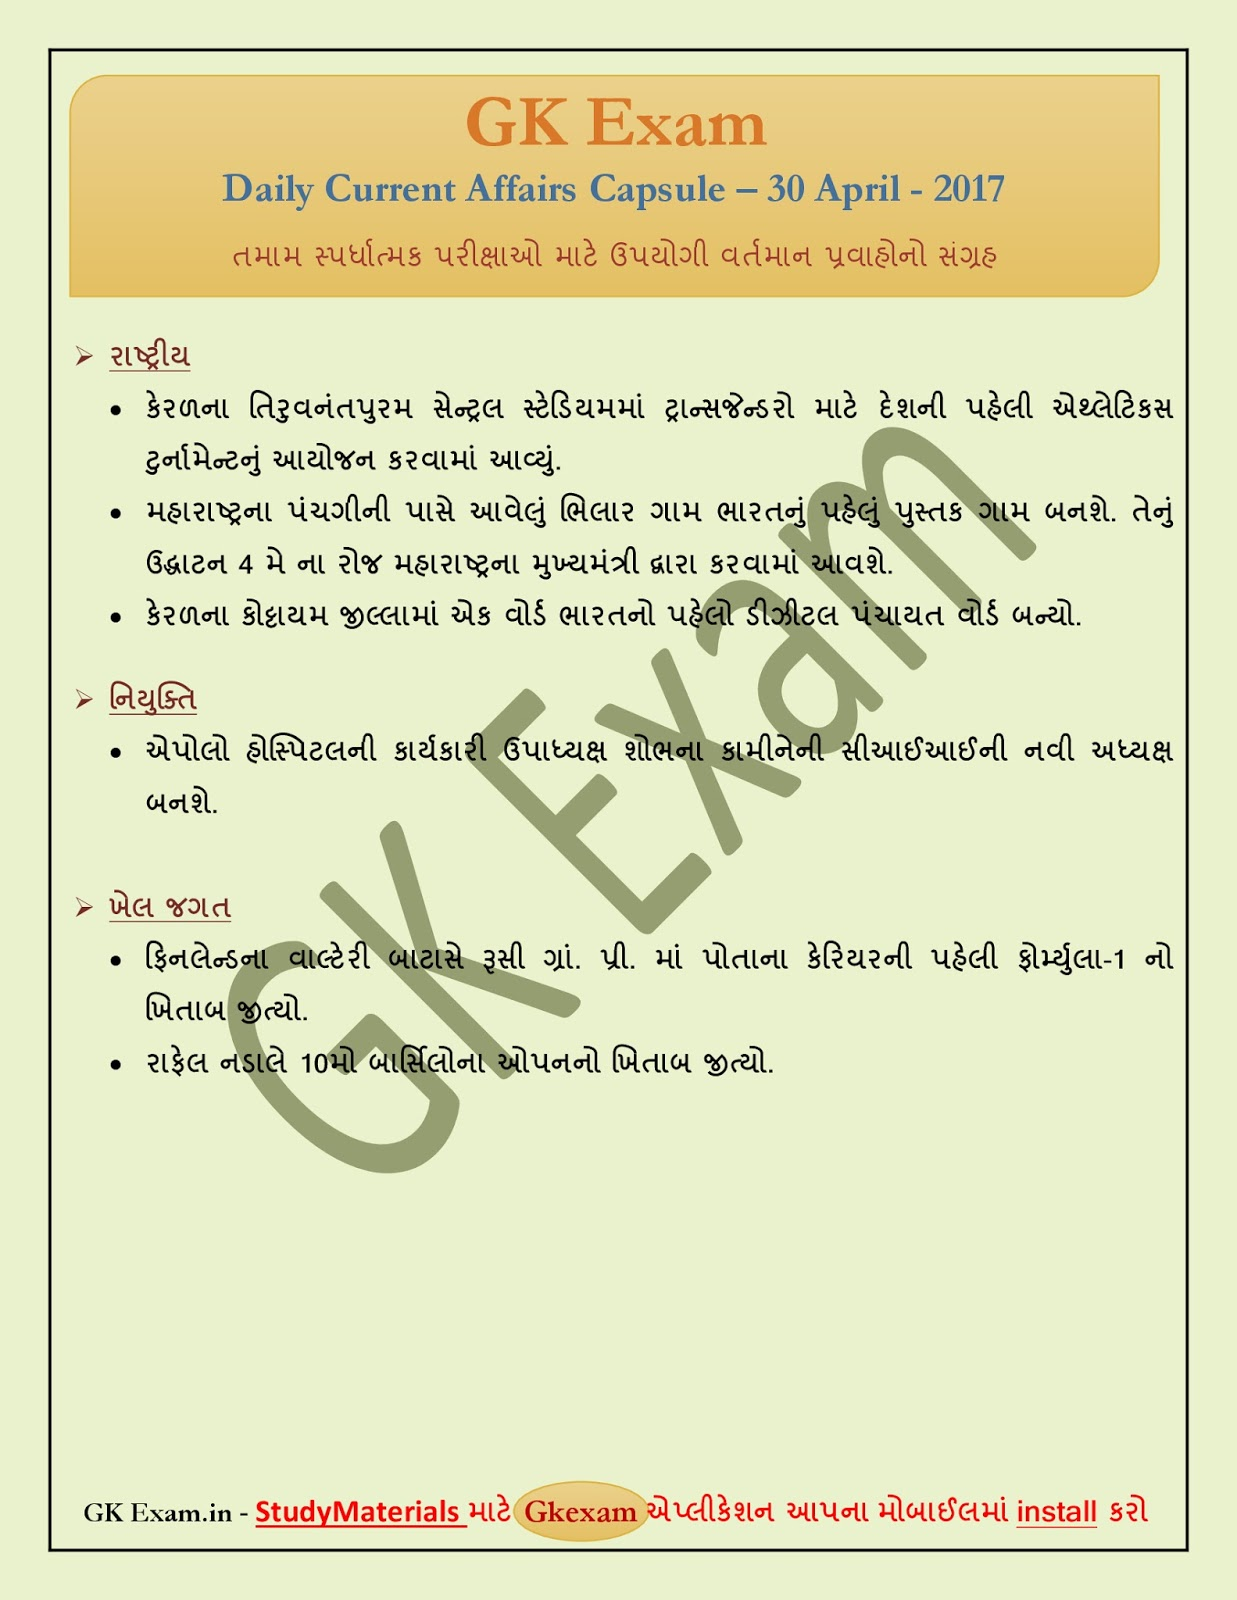 current gk till date Current affairs & generl knowledge - know all the latest curret affairs and read all the general knowledge articles visit our website for more information.